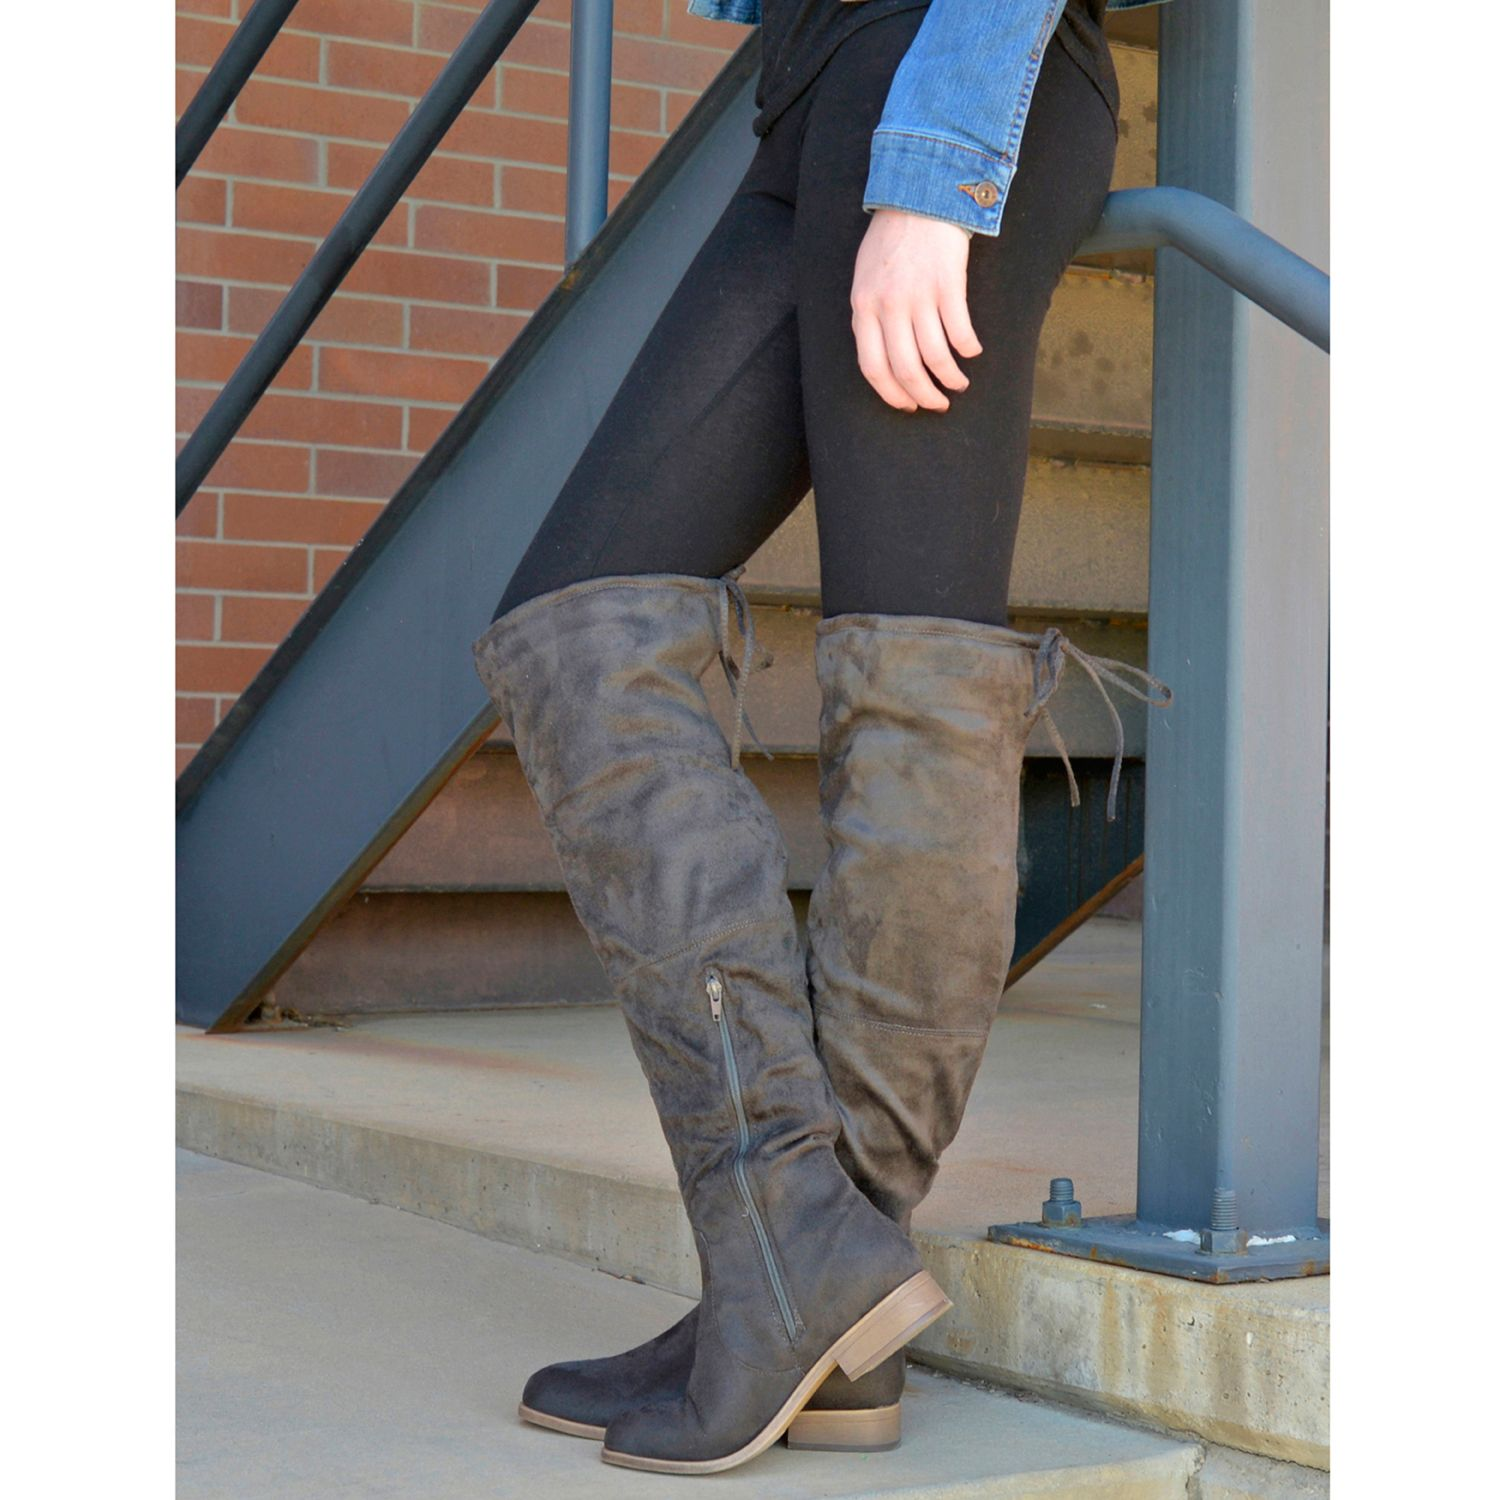 b8a683733eeb Womens Wide Calf Over-the-Knee Boots - Shoes | Kohl's